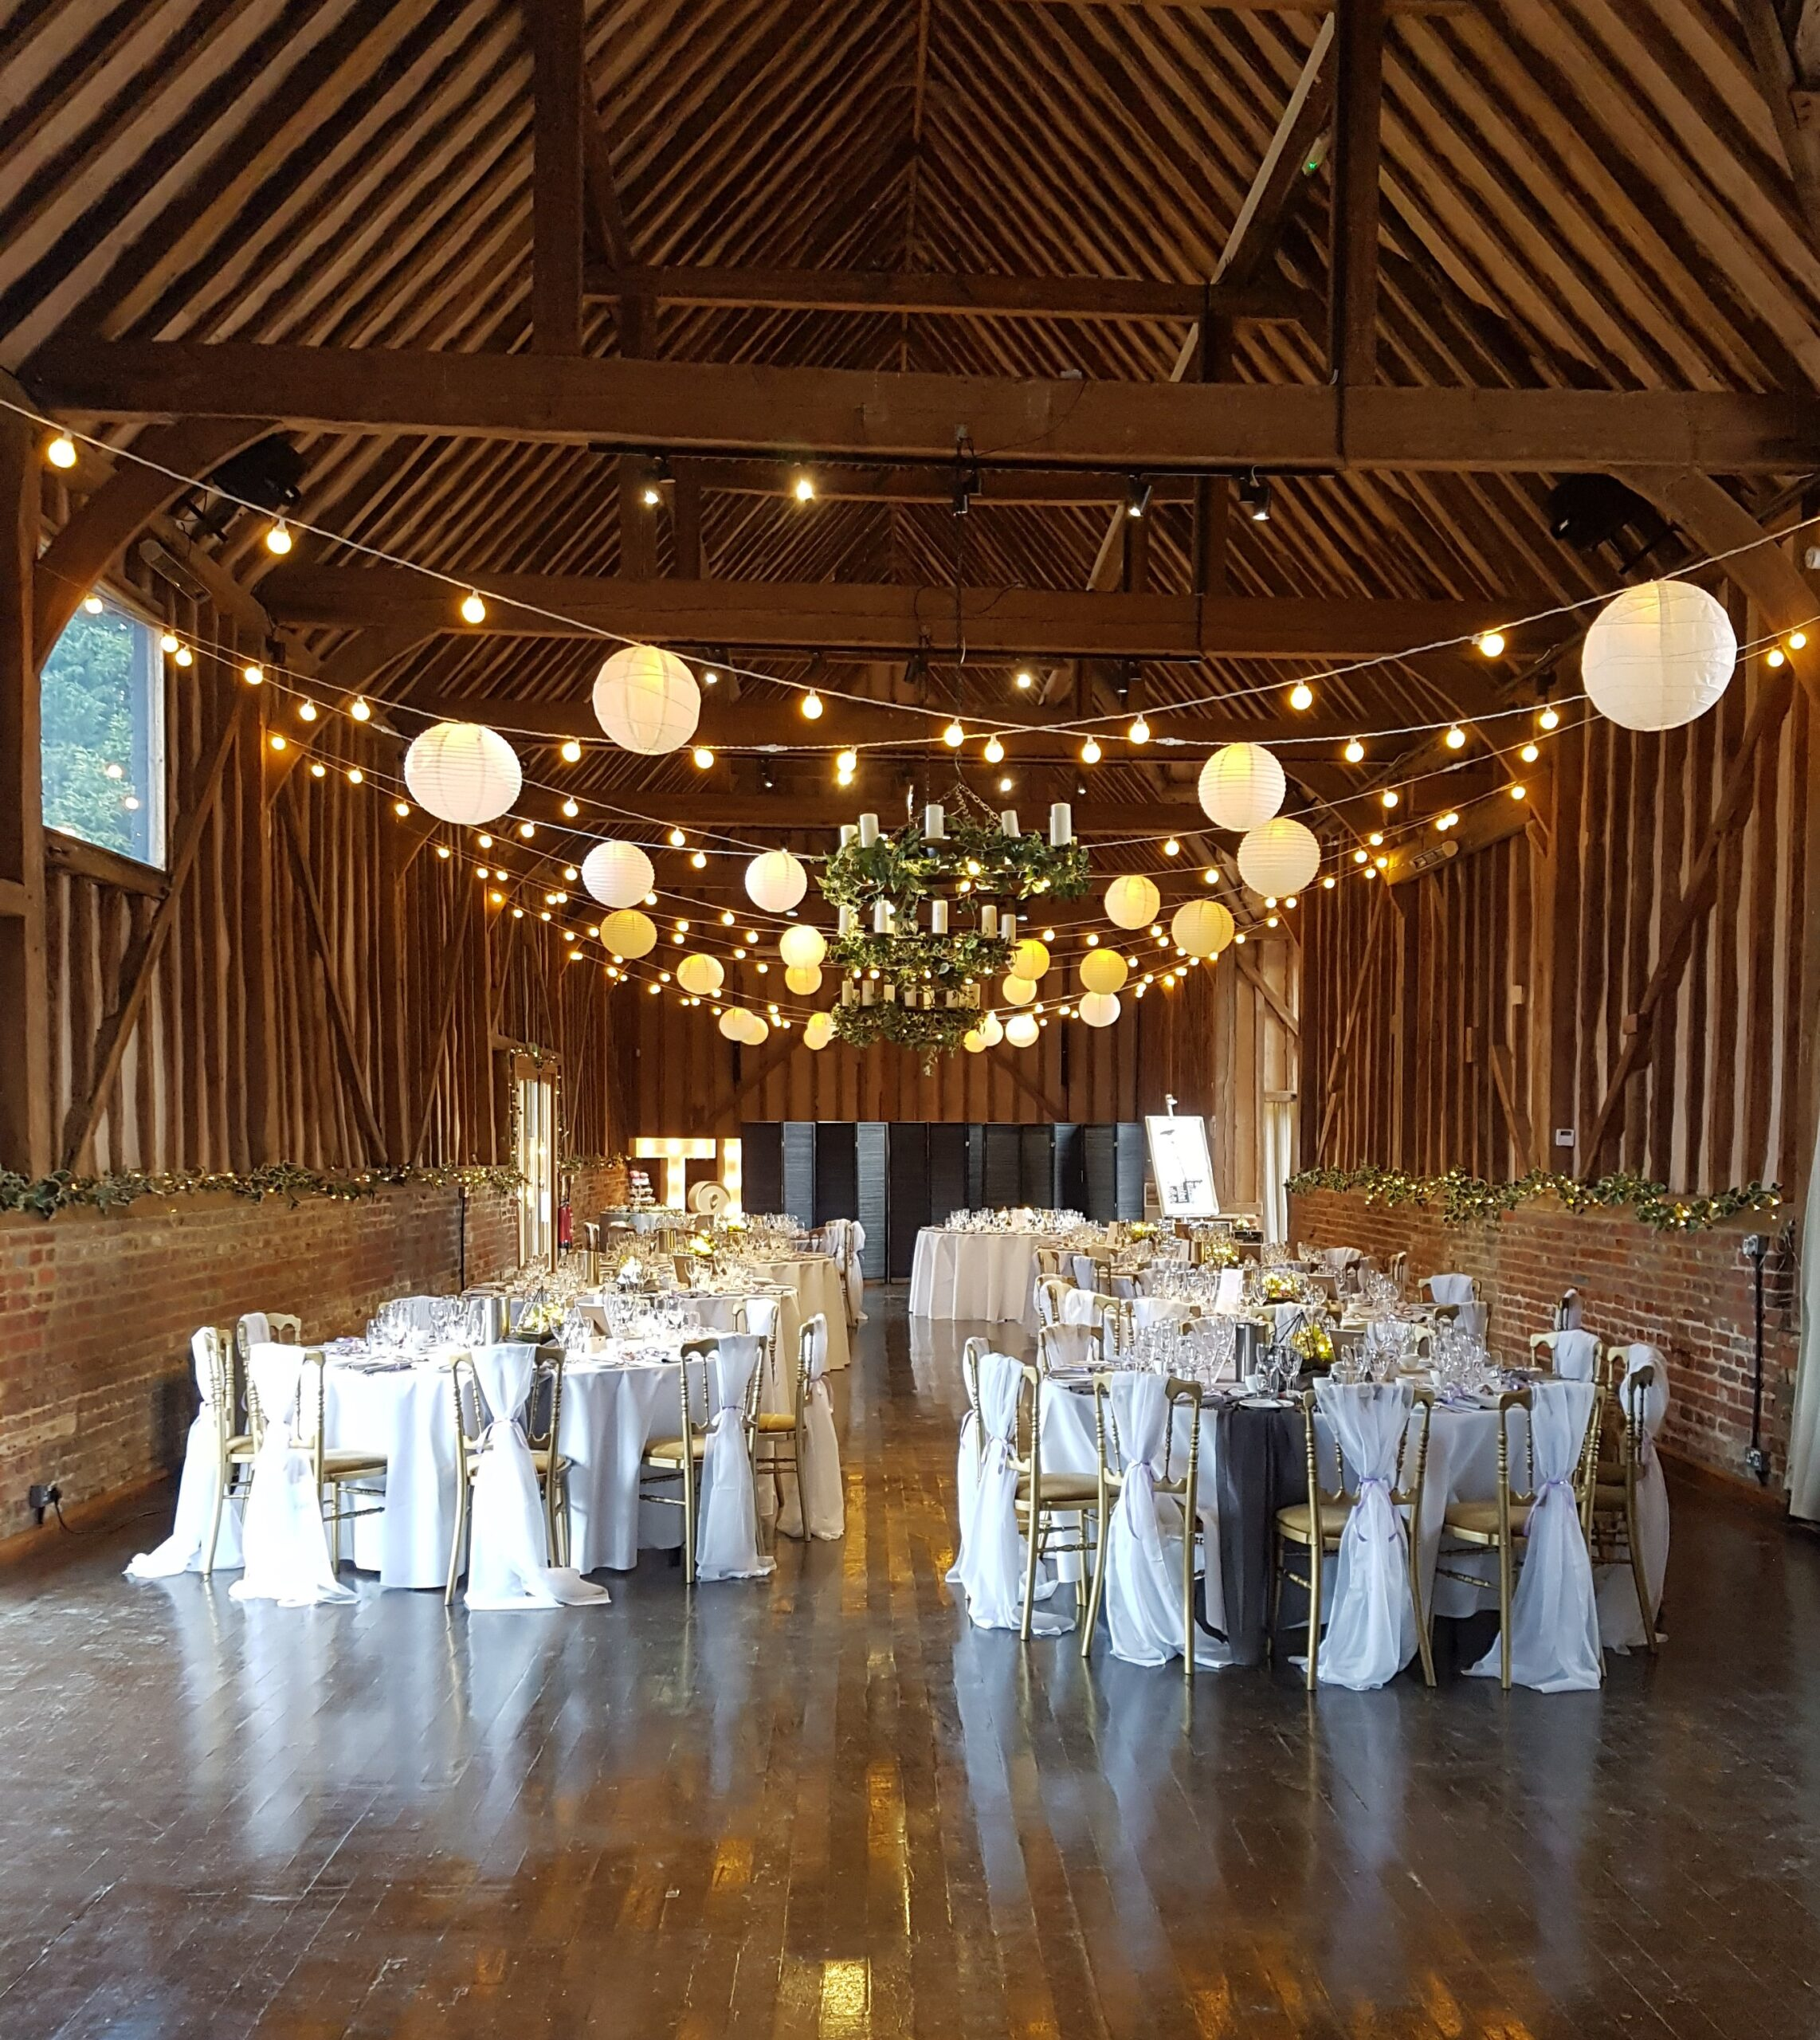 Fairy and festoon wedding and event lights for hire in Berkshire.